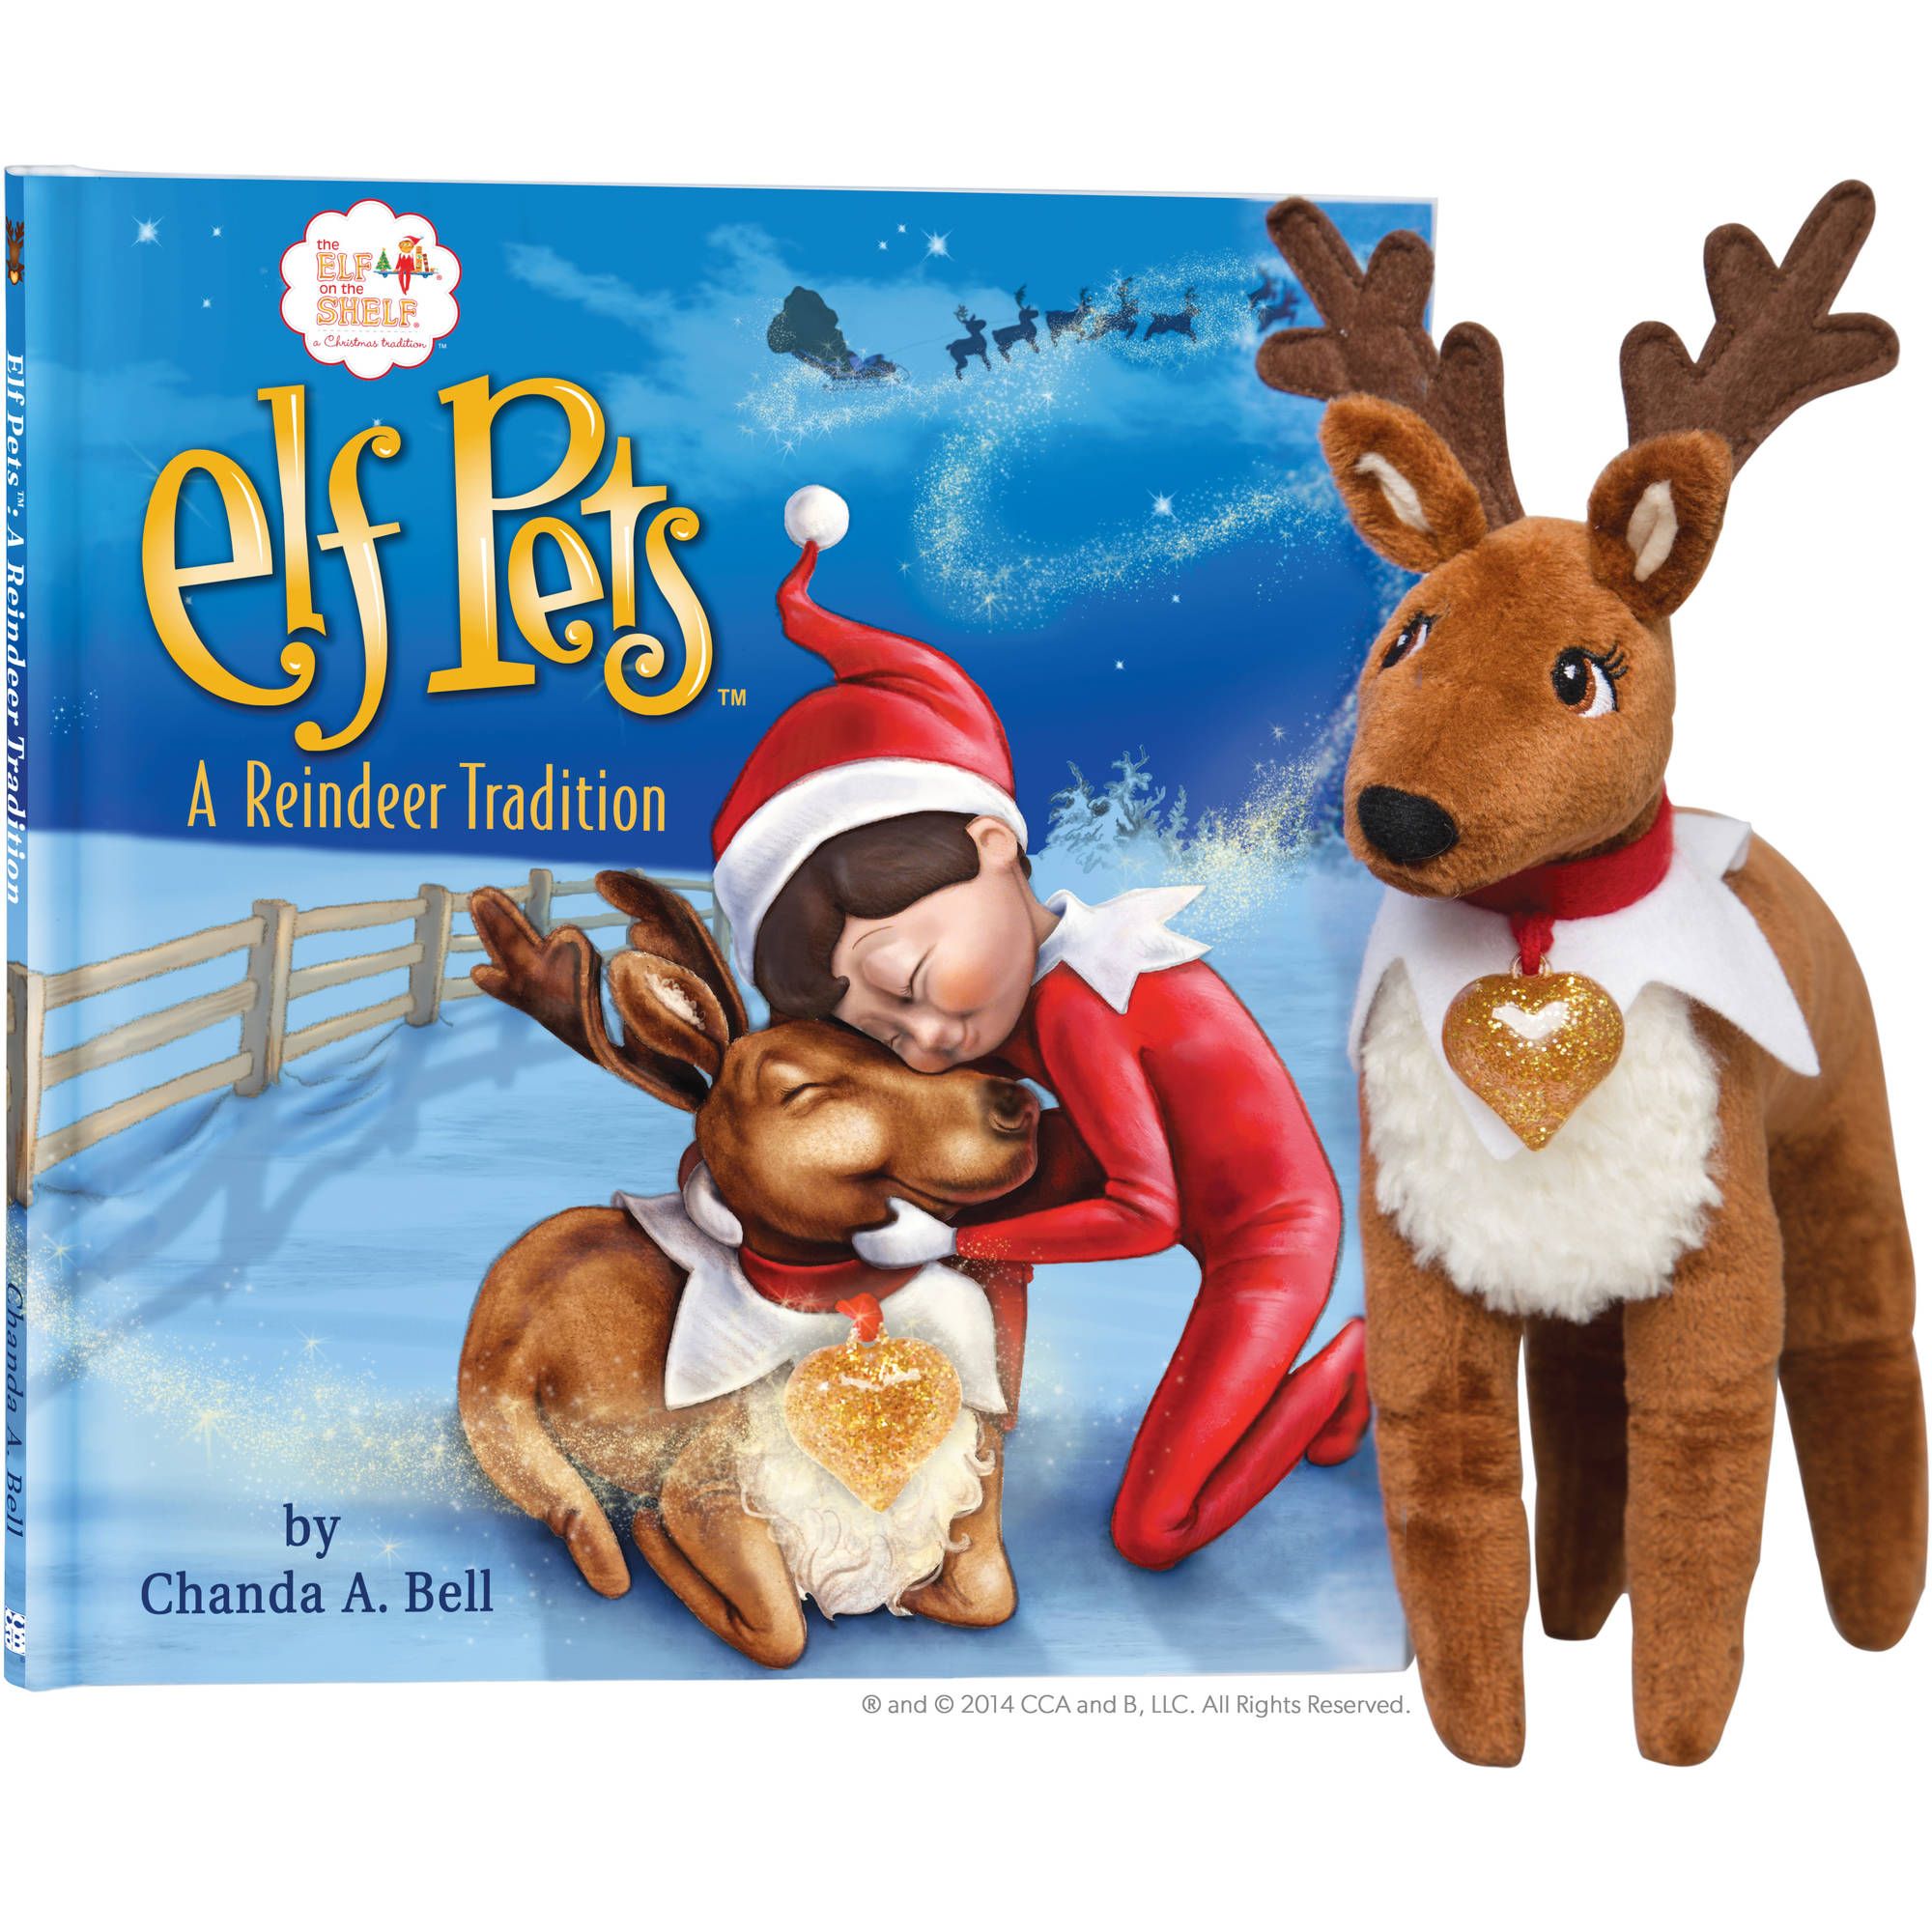 The Elf on the Shelf: A Reindeer Tradition